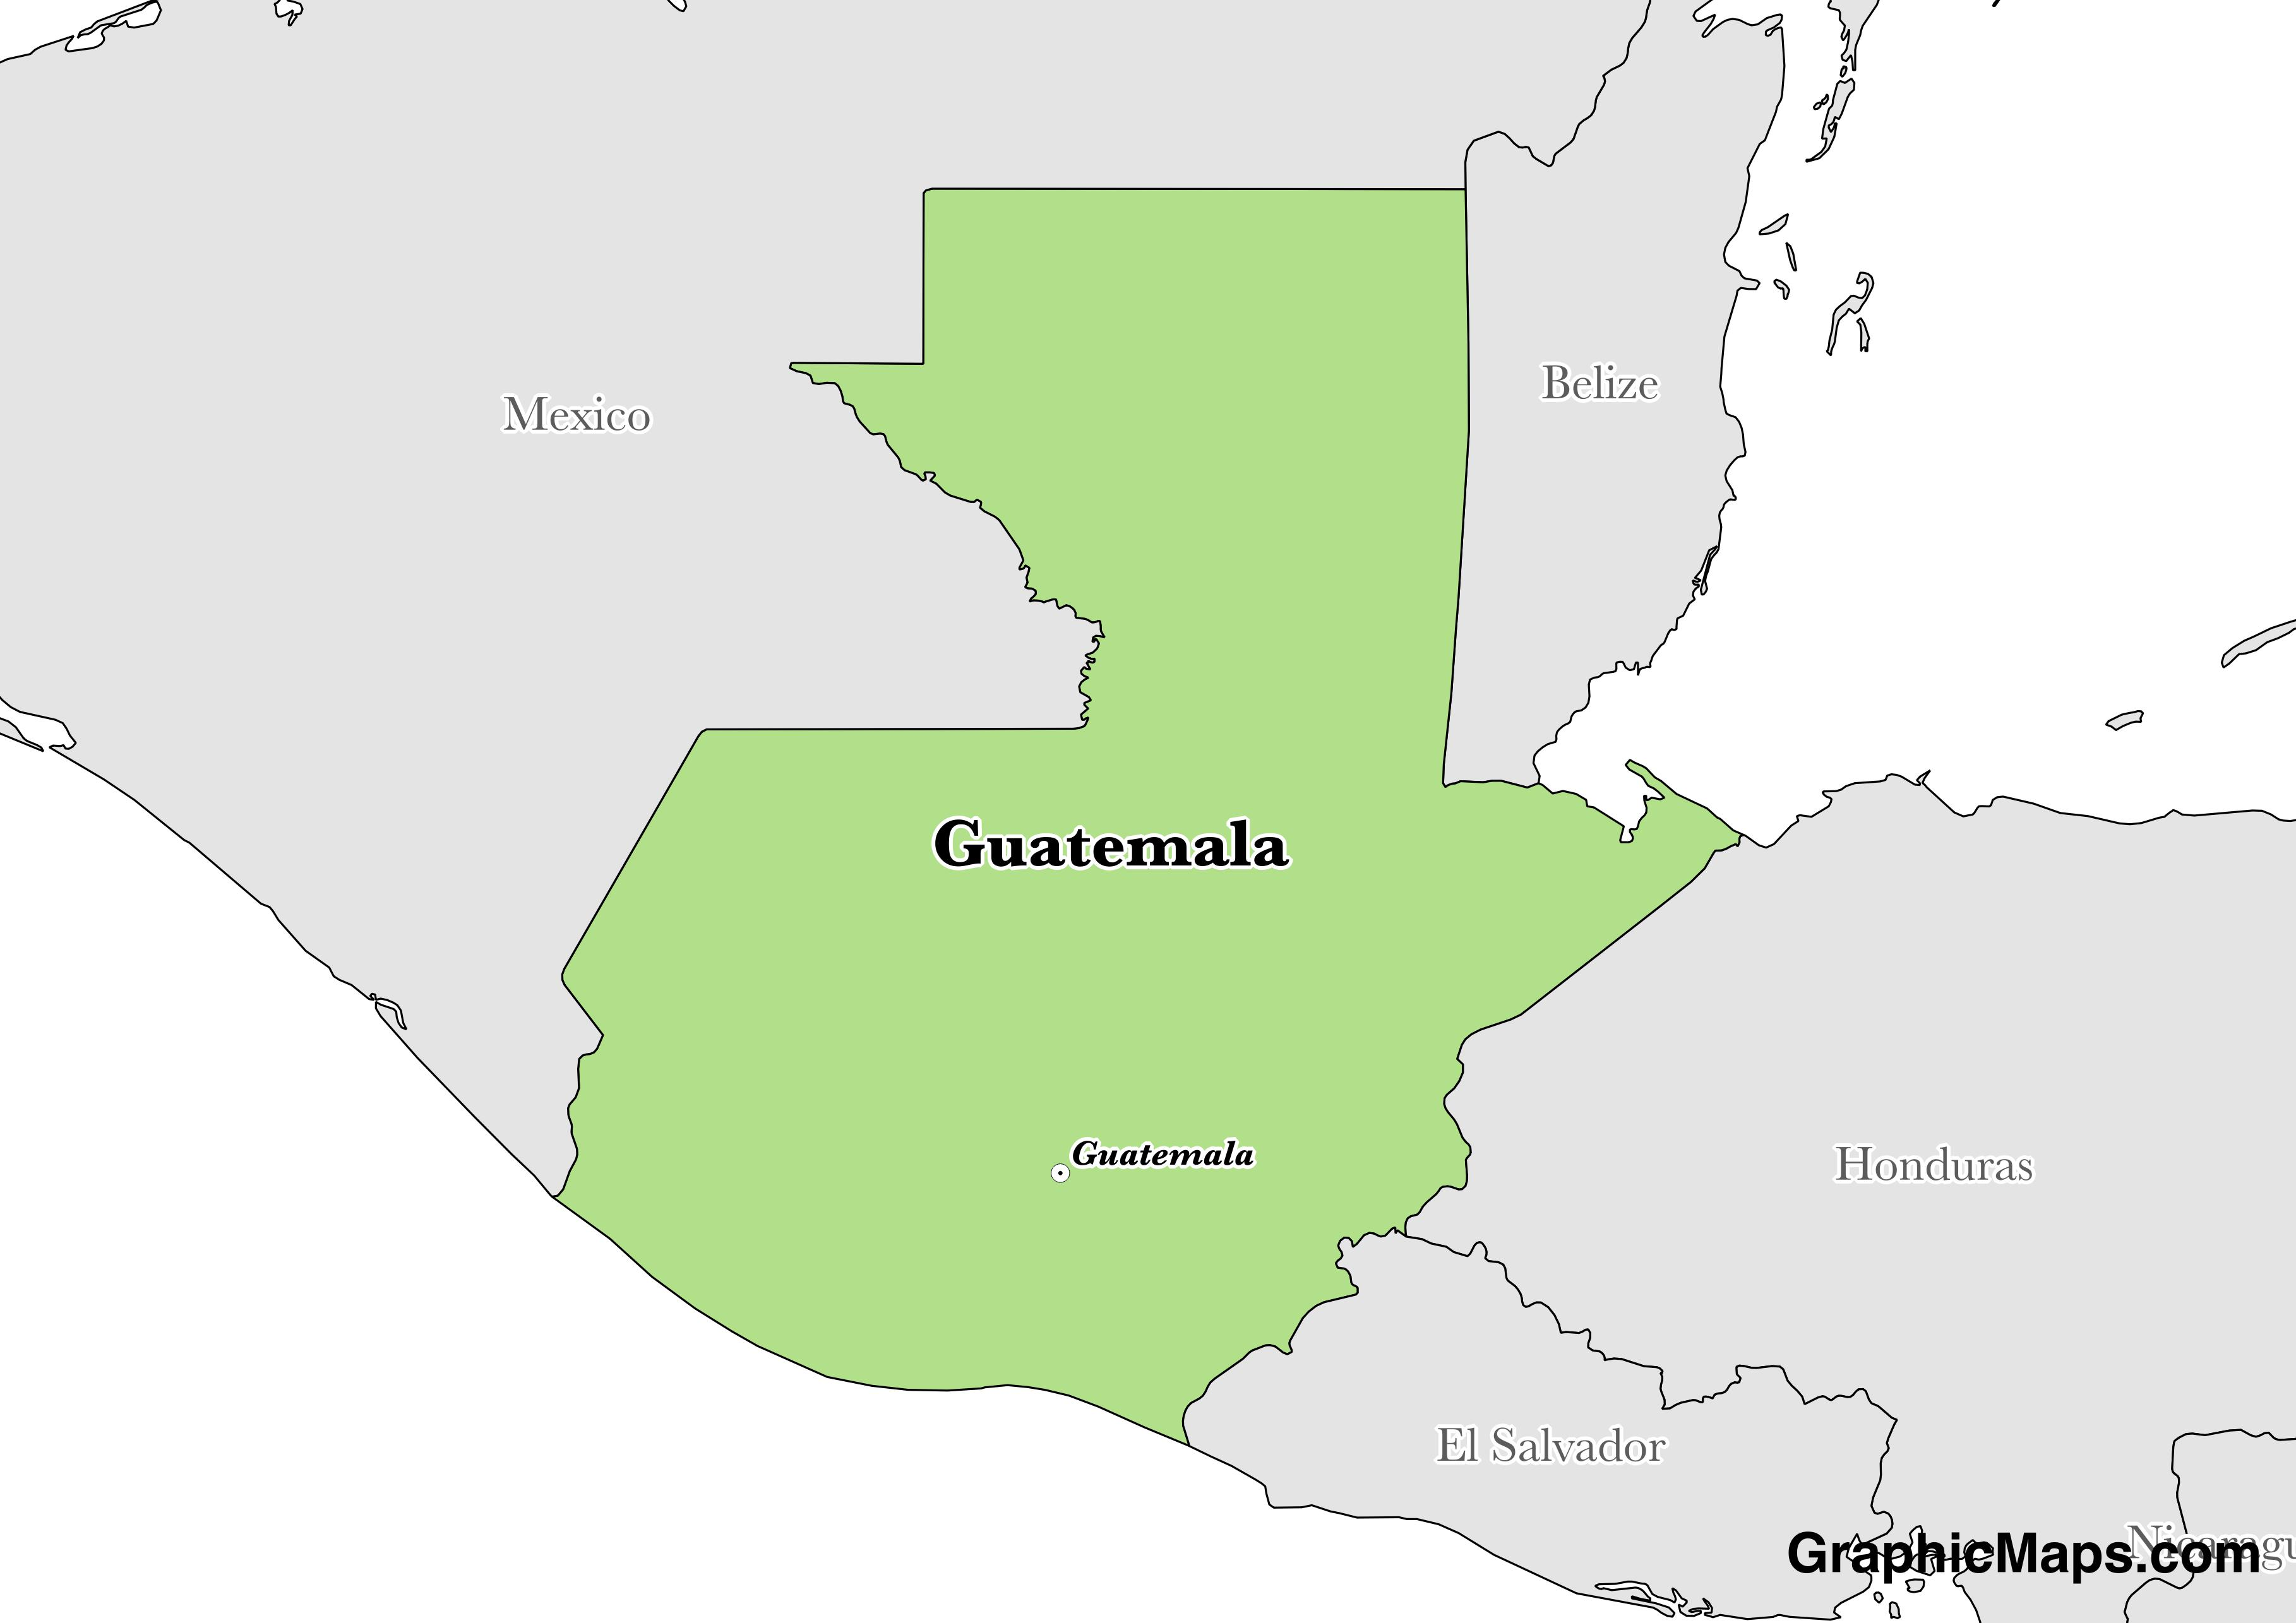 Map showing the location of Guatemala